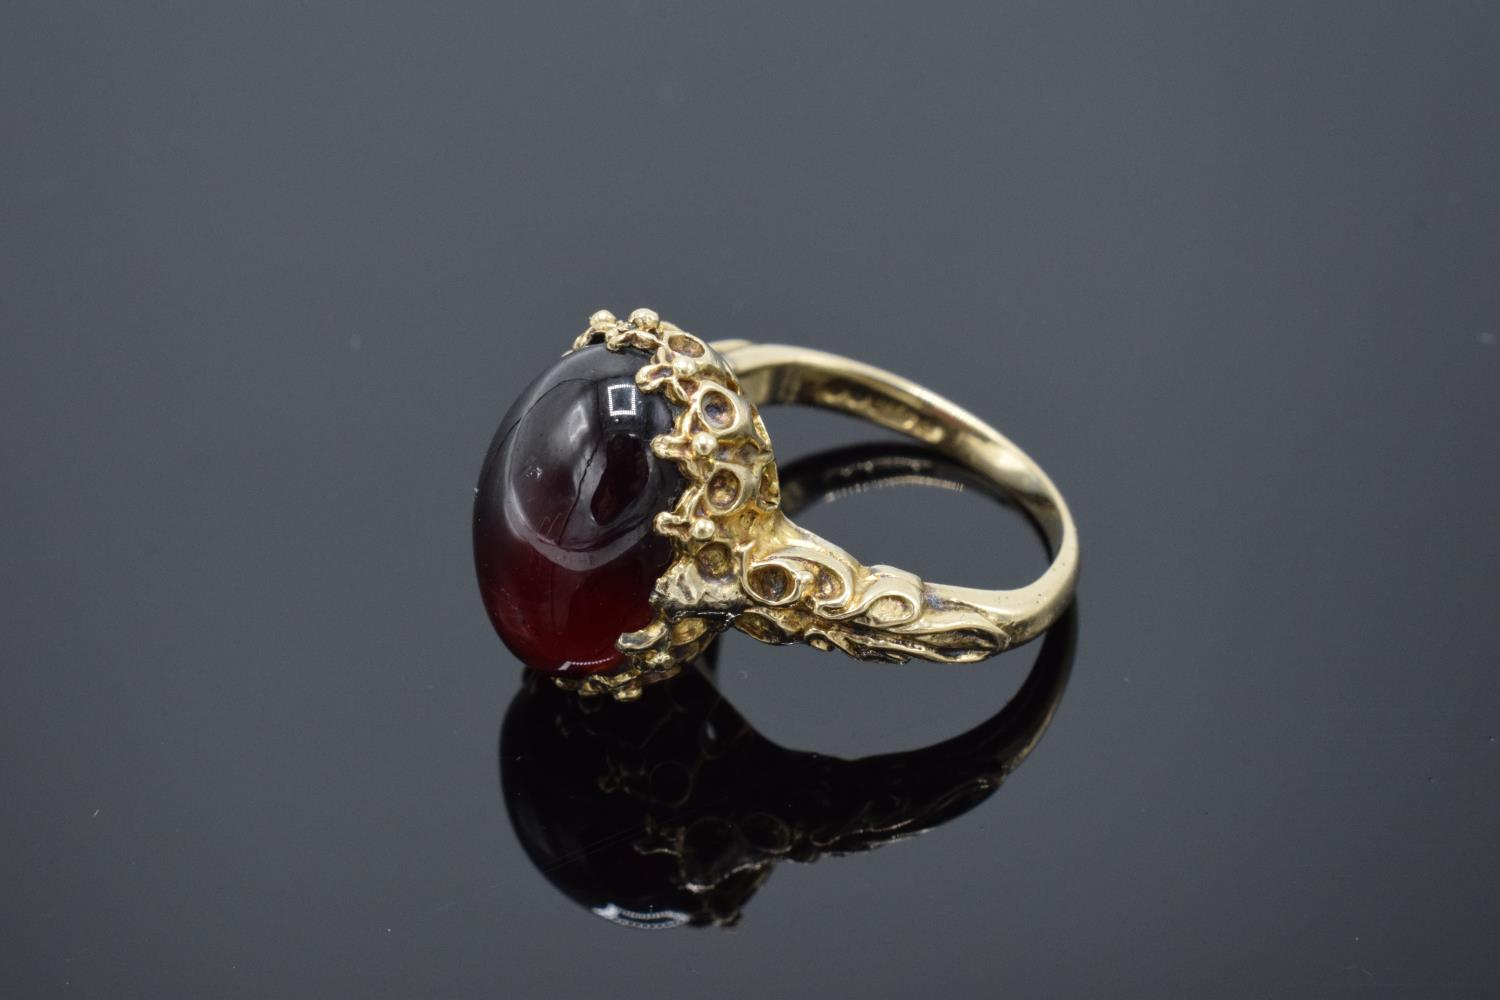 A hallmarked 9ct gold ornate ladies ring set with a polished cabochon stone, gross weight 5.5 grams. - Image 3 of 4